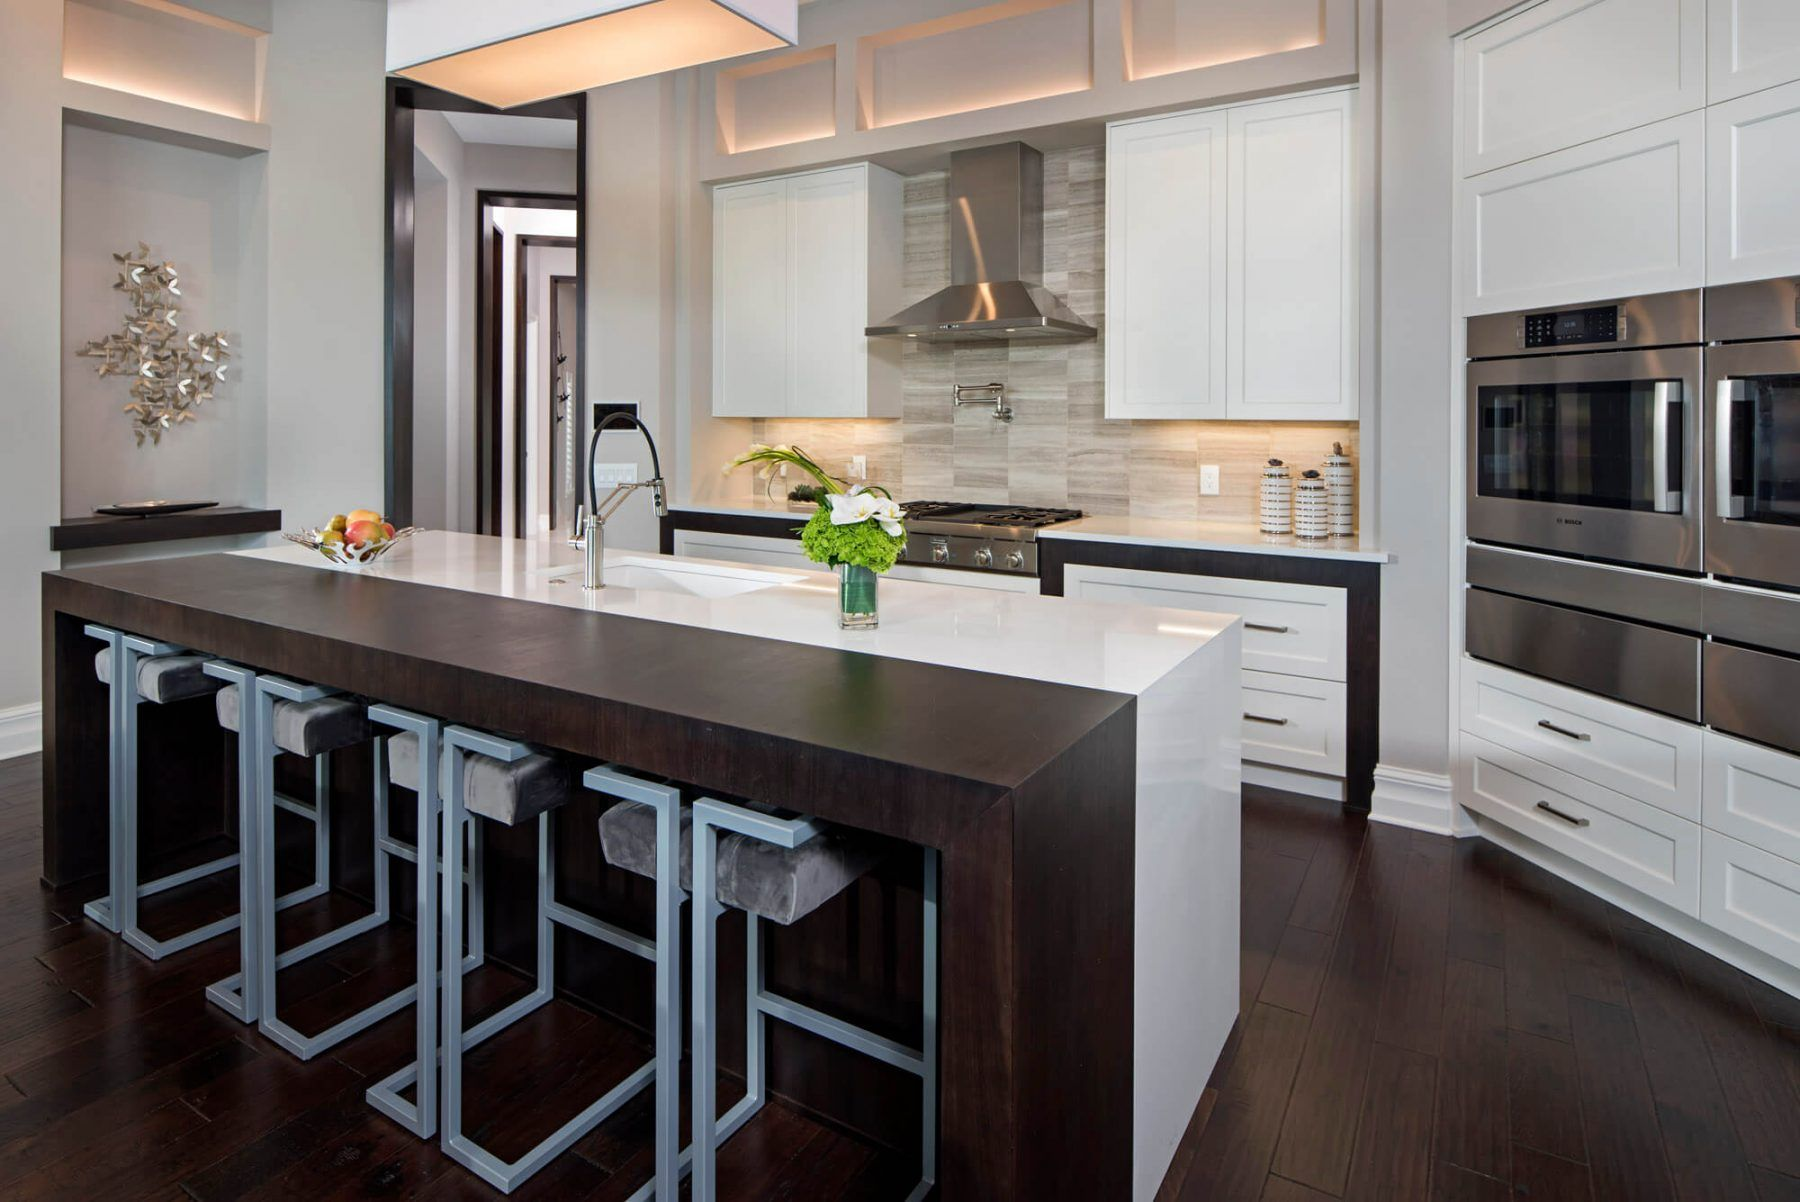 Transitional white kitchen 2018 double ovens Florida